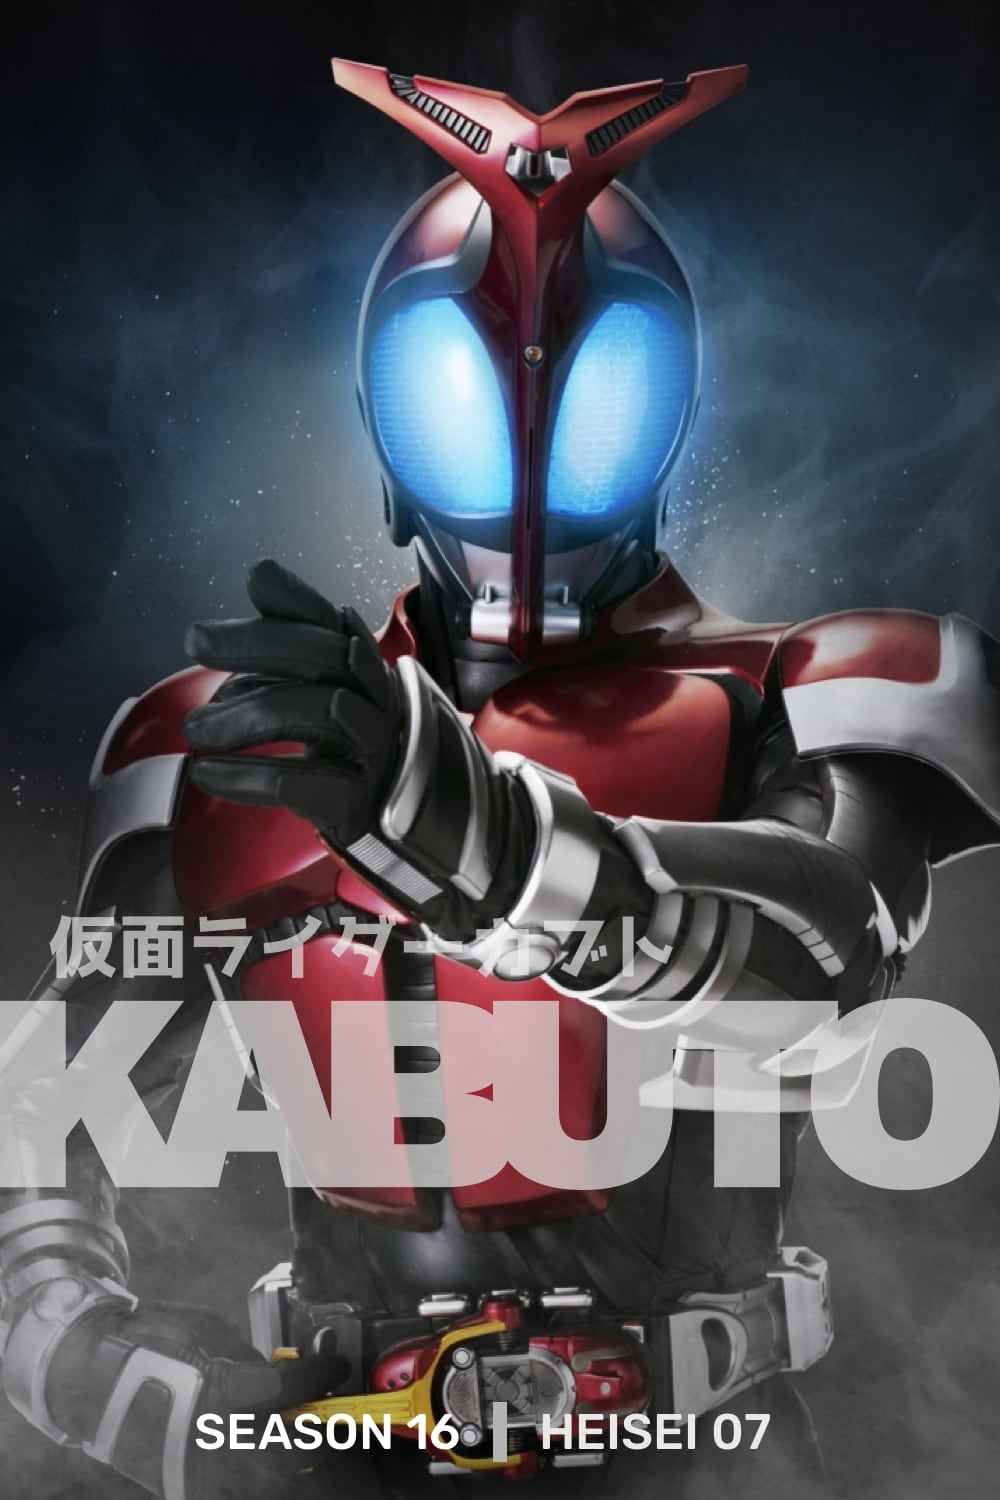 Kamen Rider - Season 21 Episode 35 : Dreams, Brother, Birth's Secret Season 16